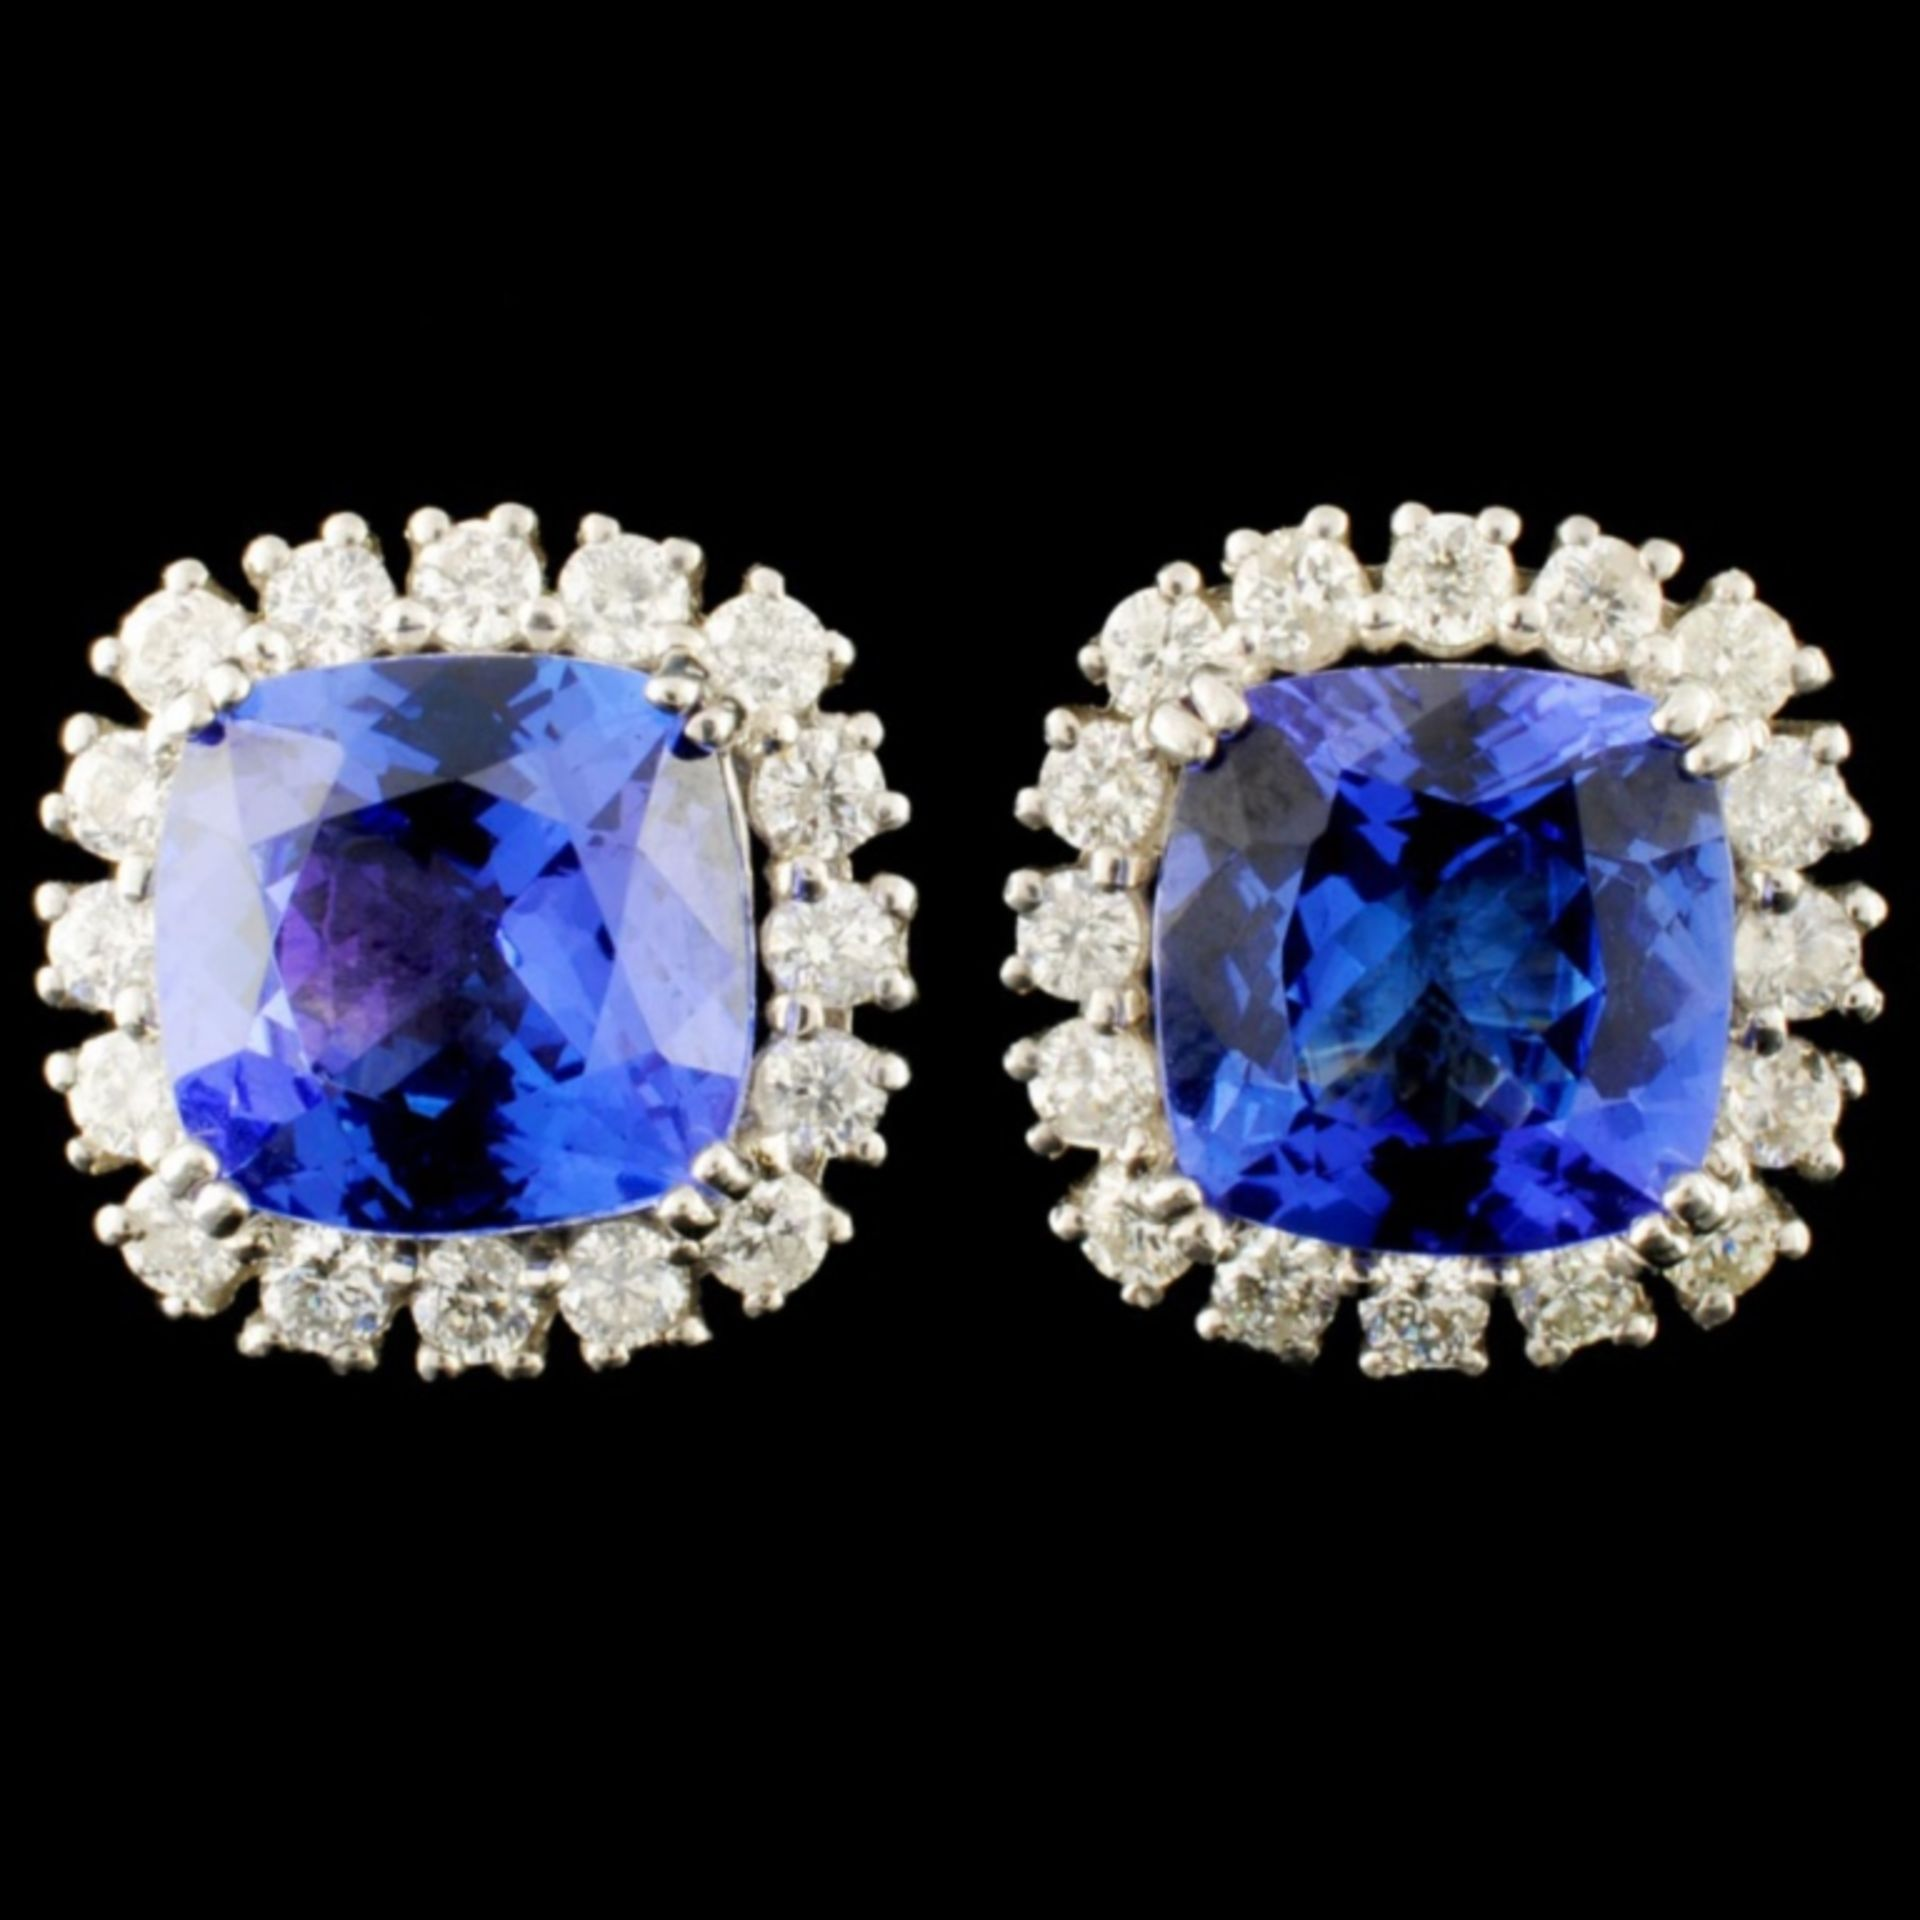 14K Gold 5.54ct Tanzanite & 1.08ctw Diamond Earrin